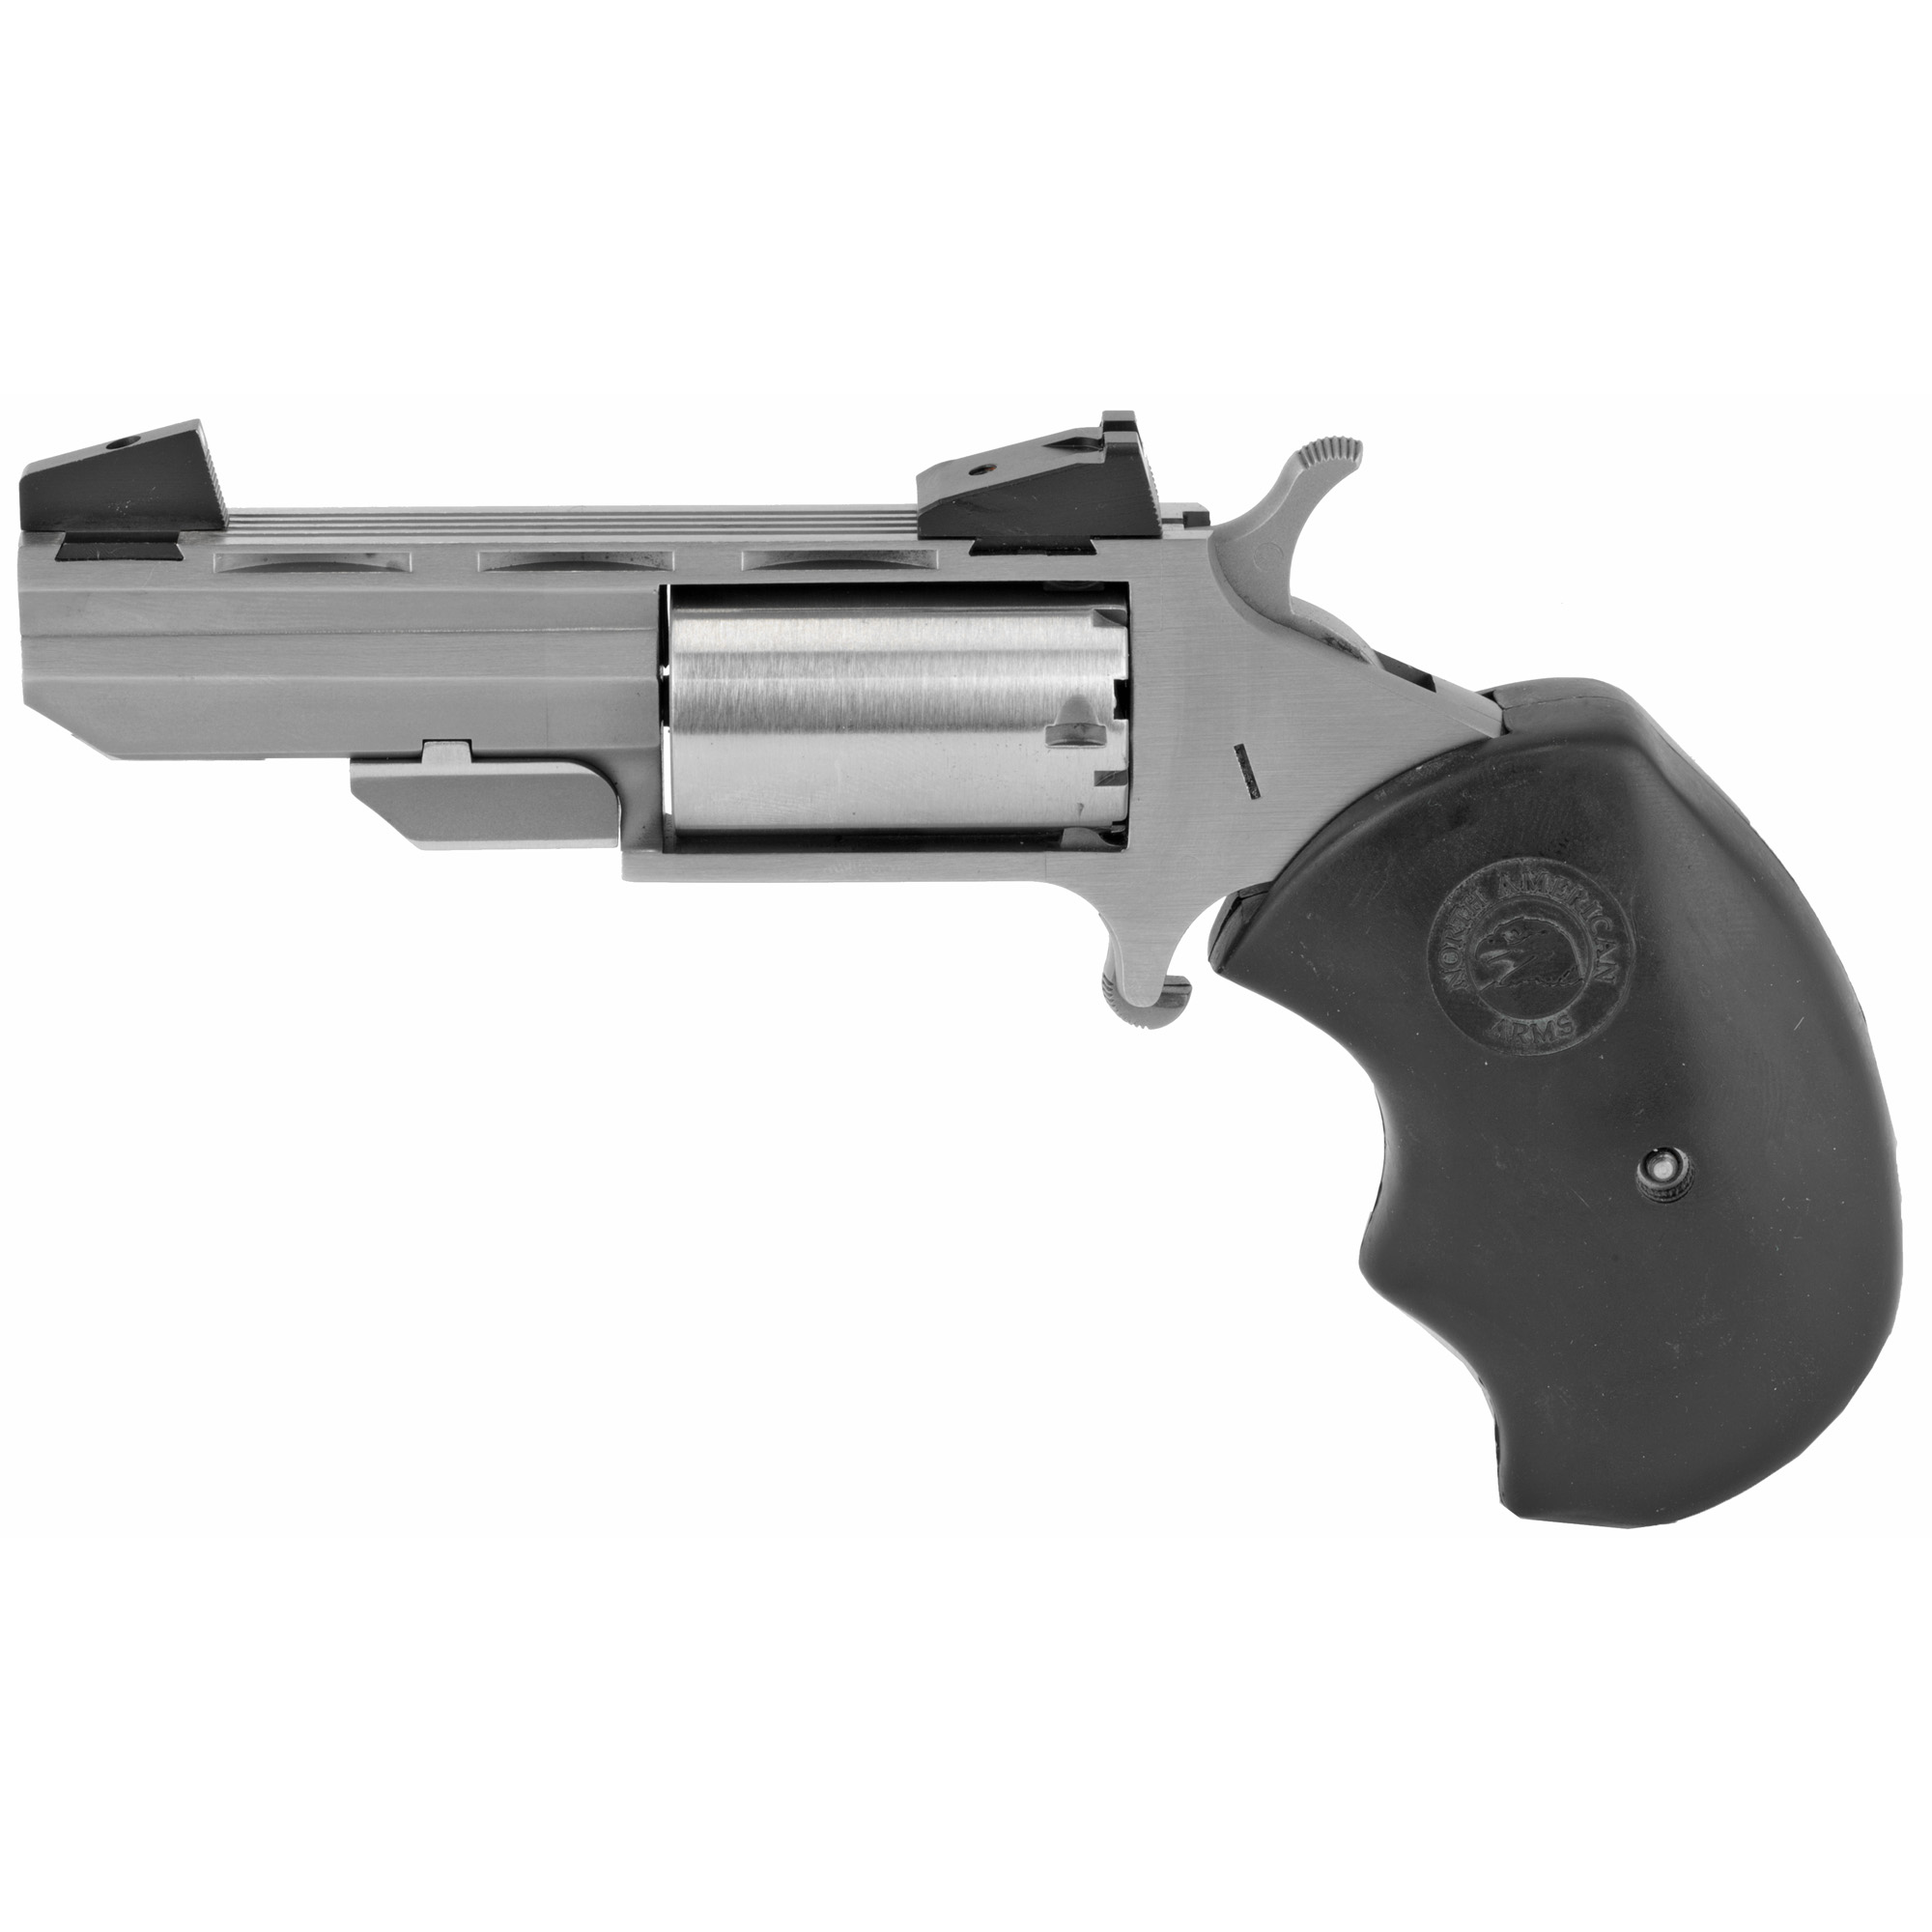 """Their Black Widow and Mini-Master Mini-Revolvers evolved from their popular .22 Magnum frame series and include the time tested design characteristics that are incorporated in all NAA Mini-Revolvers. The result is enhanced stability and accuracy for the shooter. Both the Black Widow and the Mini-Master have a Heavy Vent Barrel"""" a Bull Cylinder"""" Oversized Black Rubber Grips and come with either Adjustable Marble Arms Sights for elevation or Fixed Low Profile Sights"""" also by Marble Arms. 5-Shot capacity."""